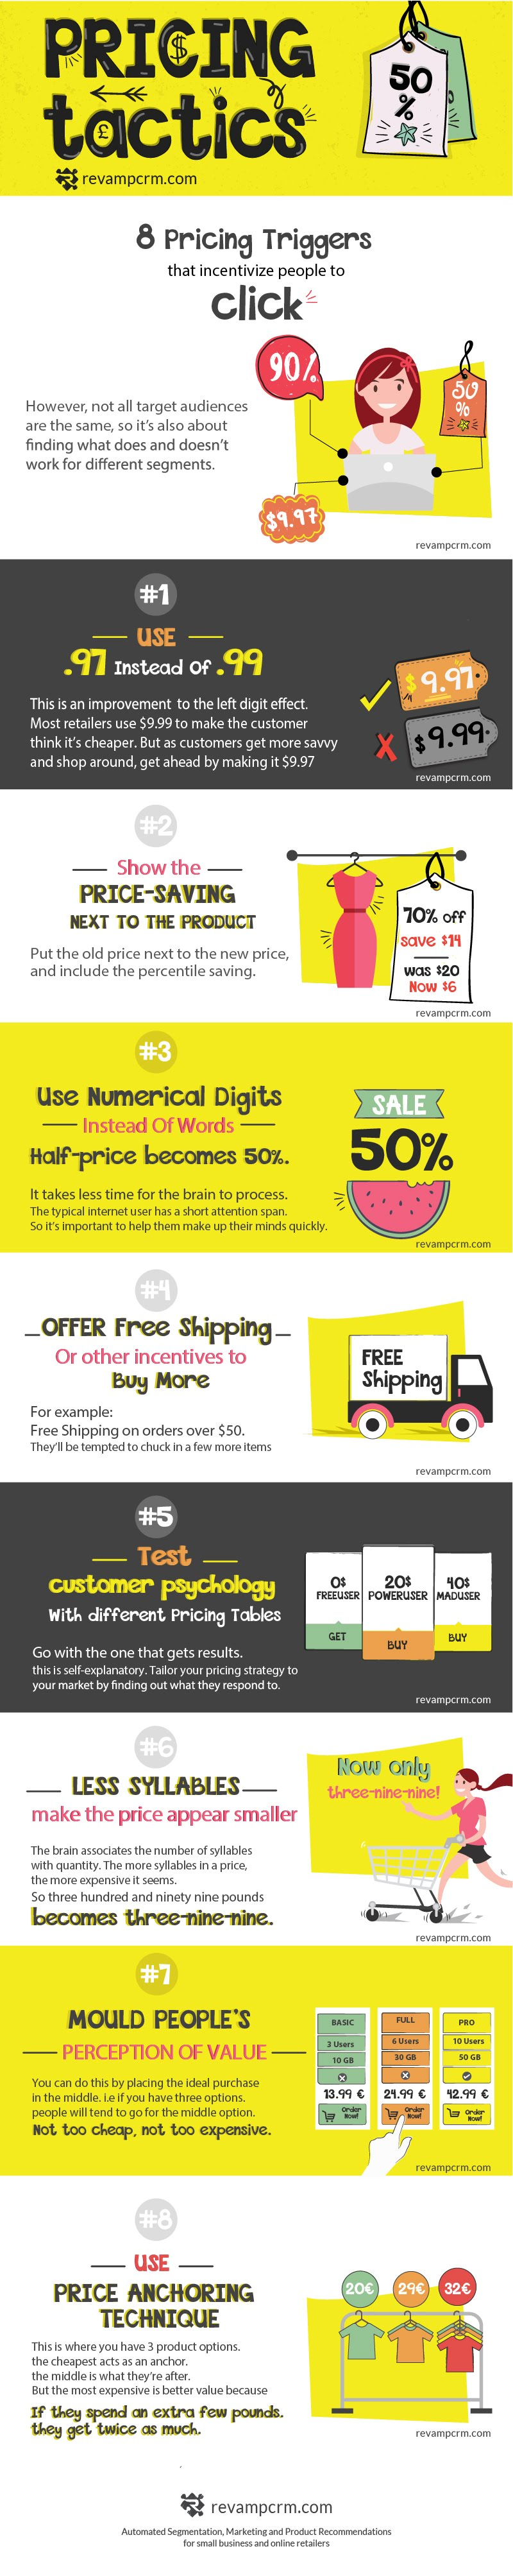 Pricing Tactics - #Infographic